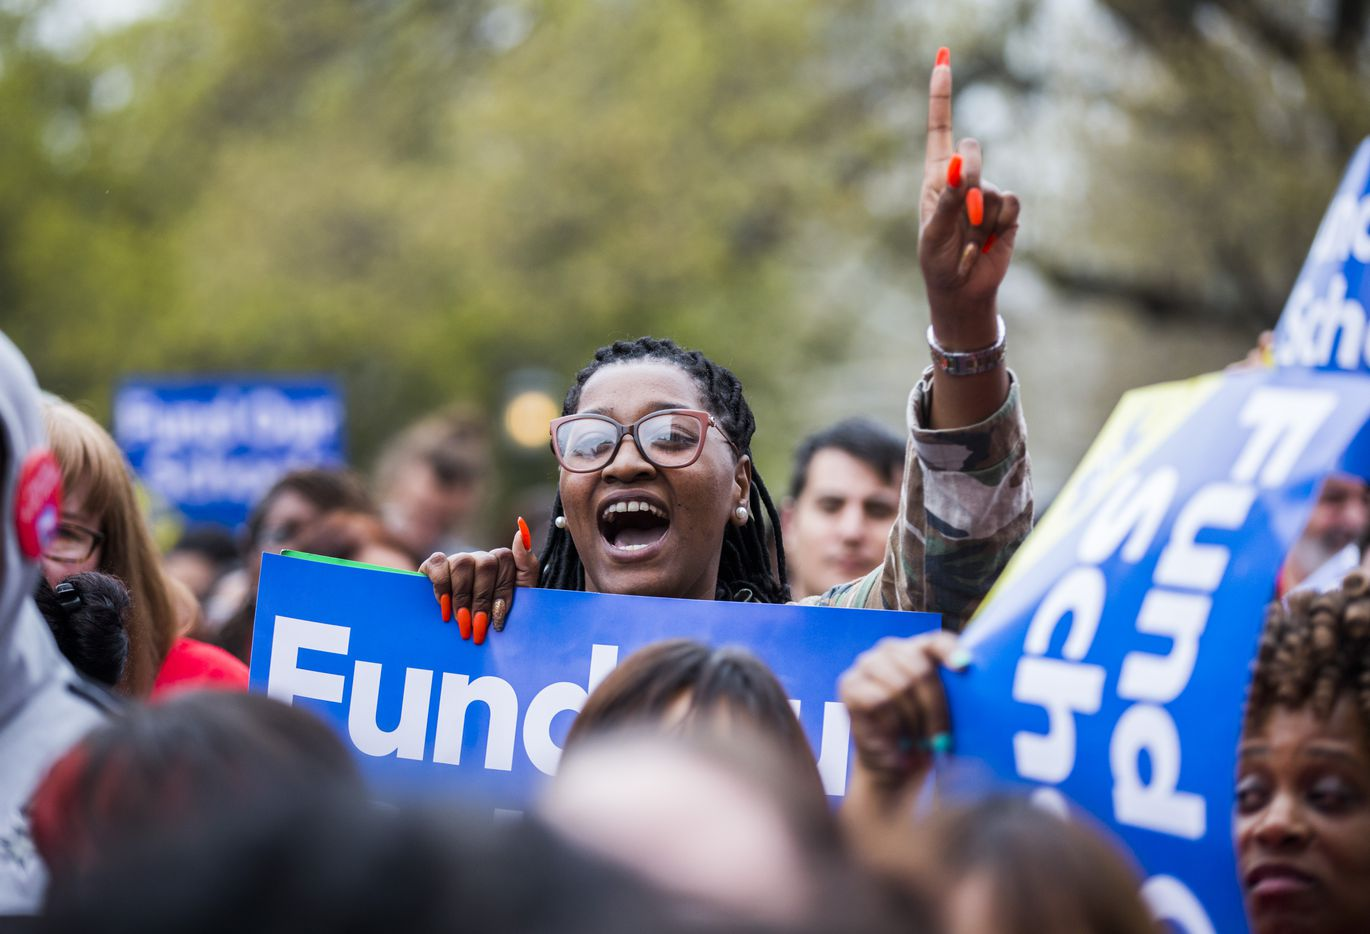 Fifth grade teacher Lindsey Dickens of Houston chants during the Texas Public Education Rally on Monday, March 11, 2019 at the Texas capitol in Austin. Teachers pushed for school finance reform and pay raises.